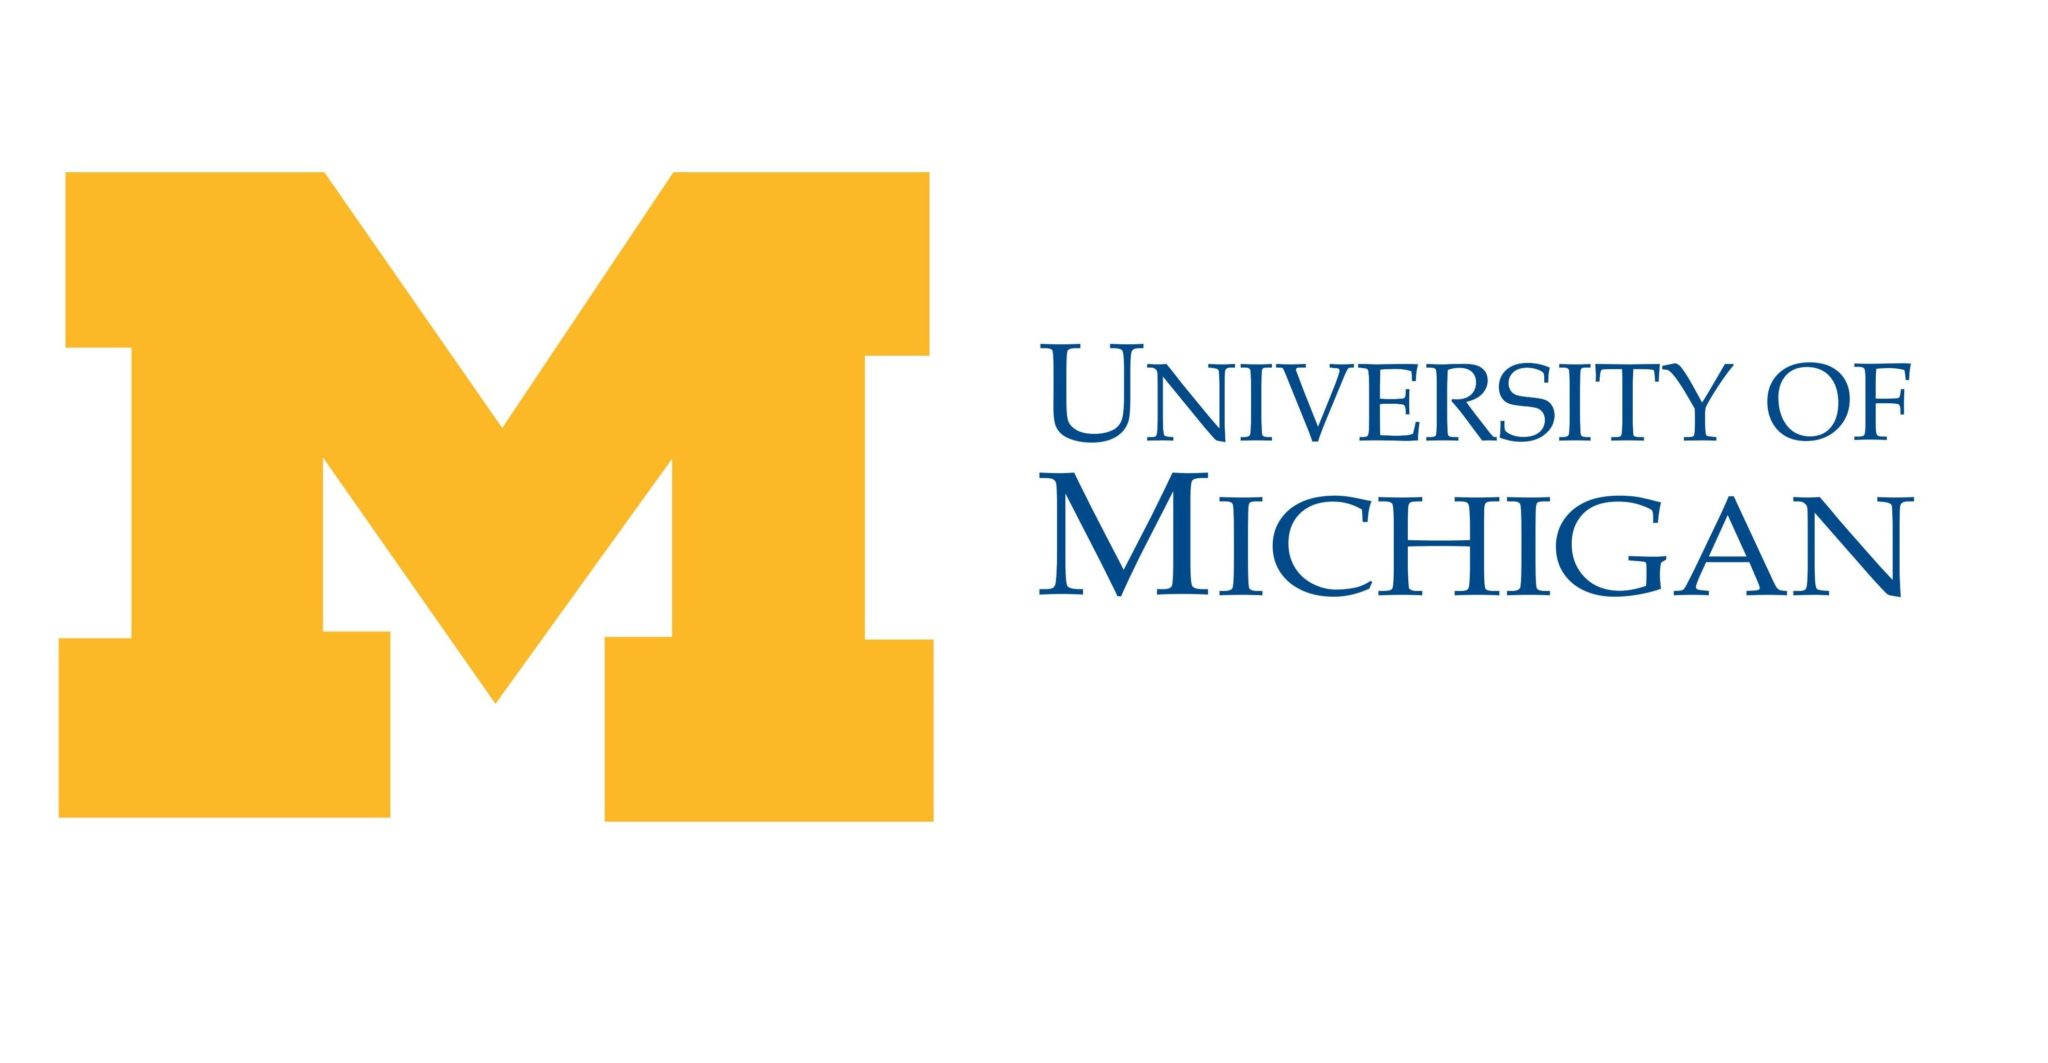 University of Michigan Bachelor's in Data Science